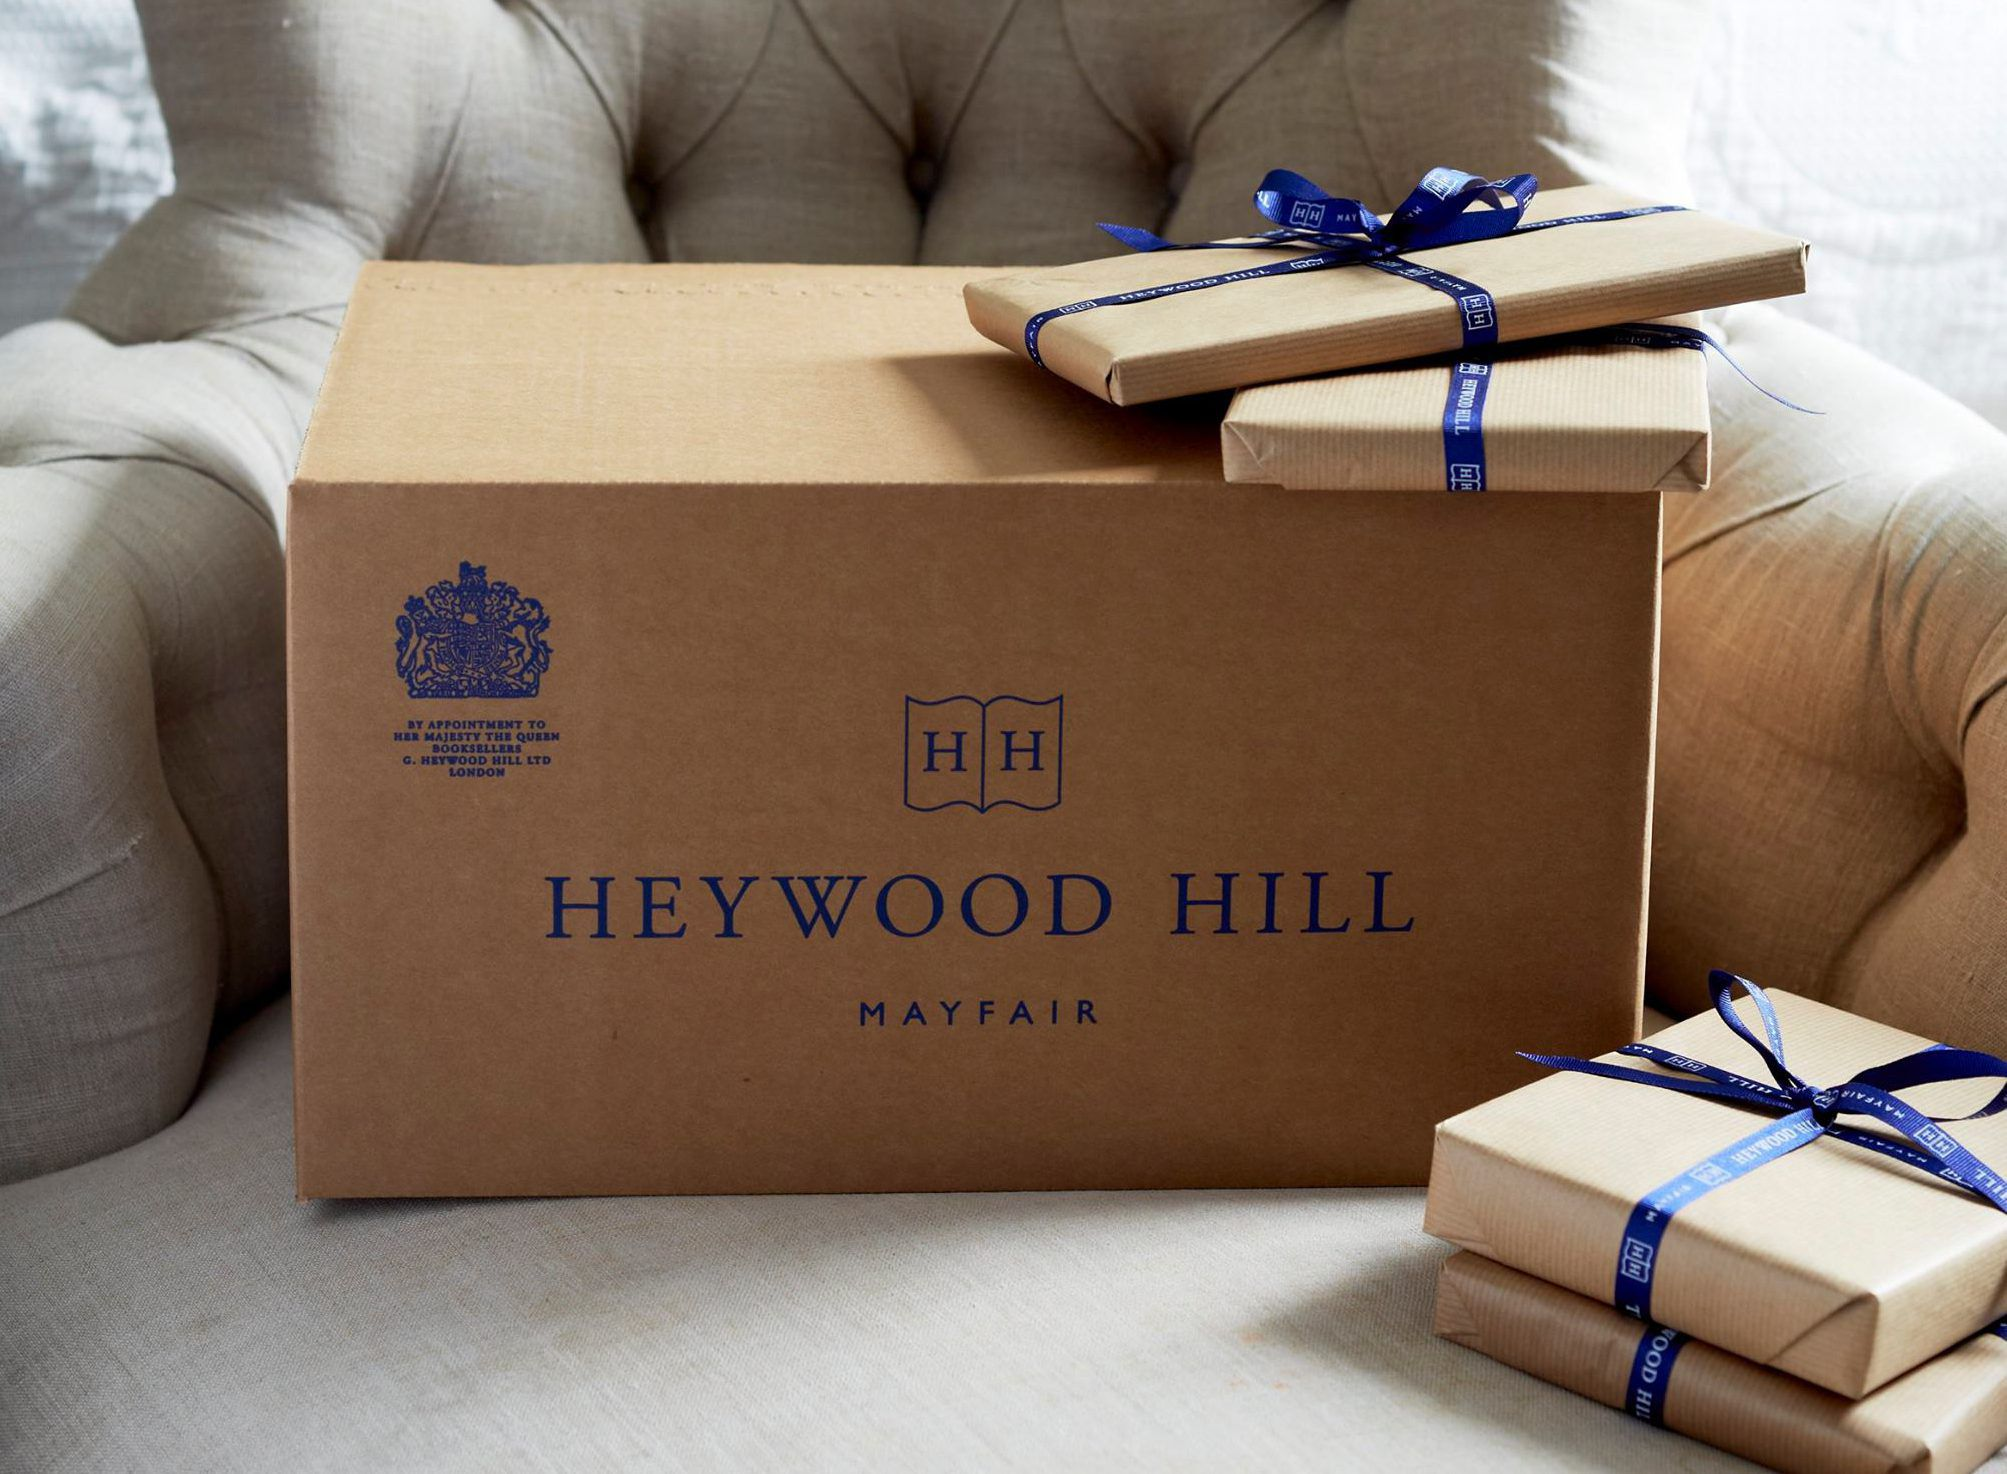 heywood hill box